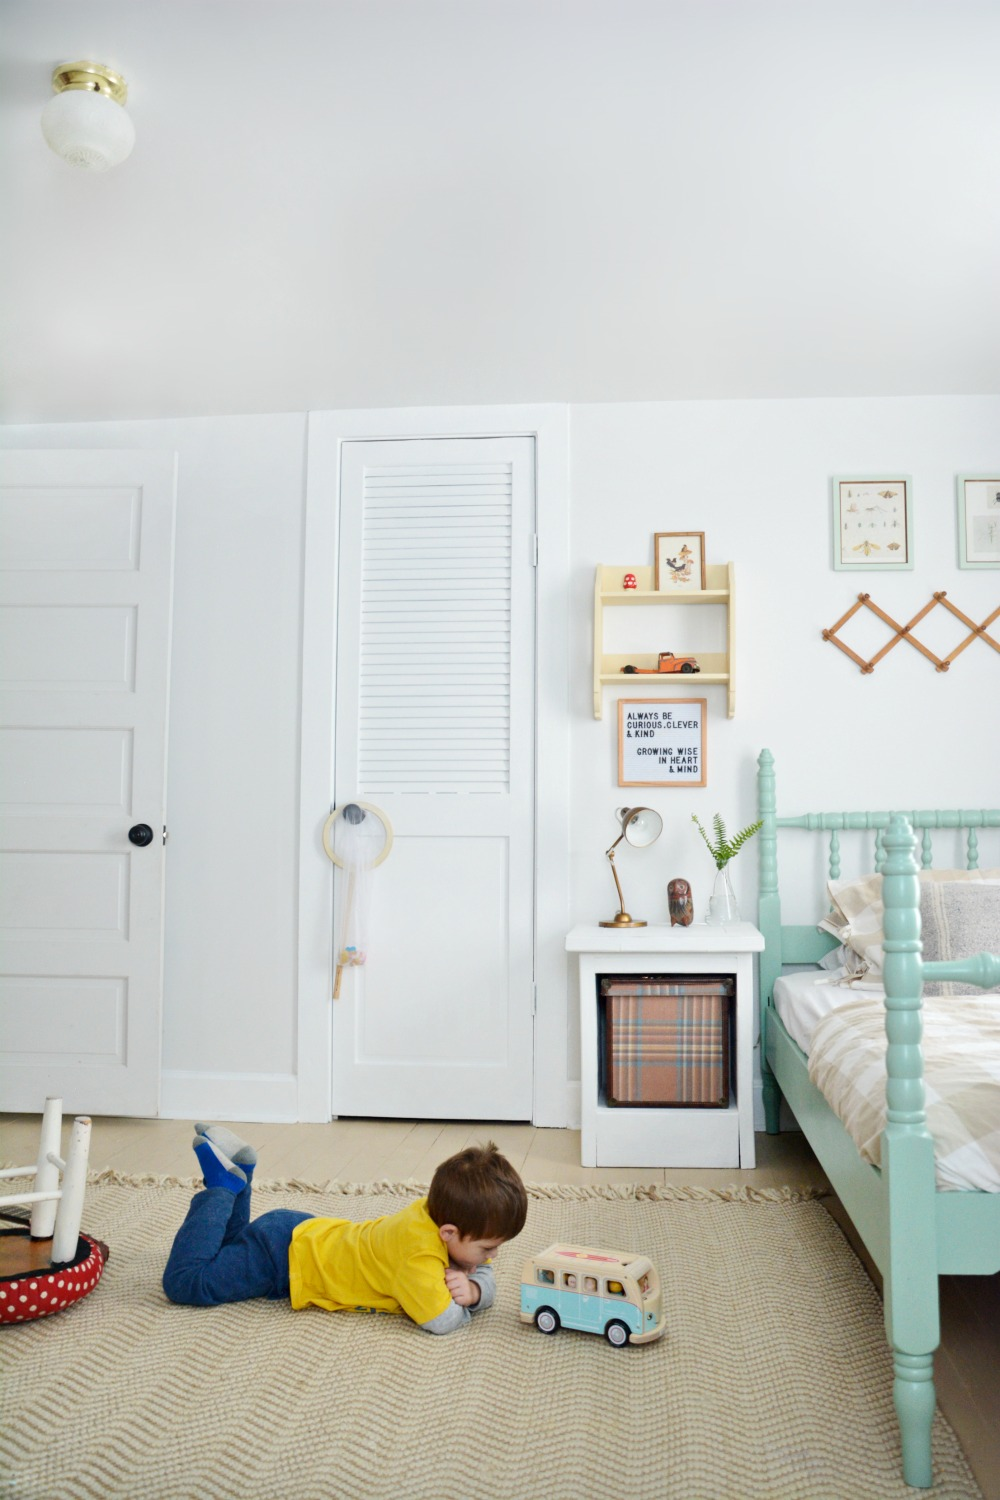 O-playing-in-boy-bedroom